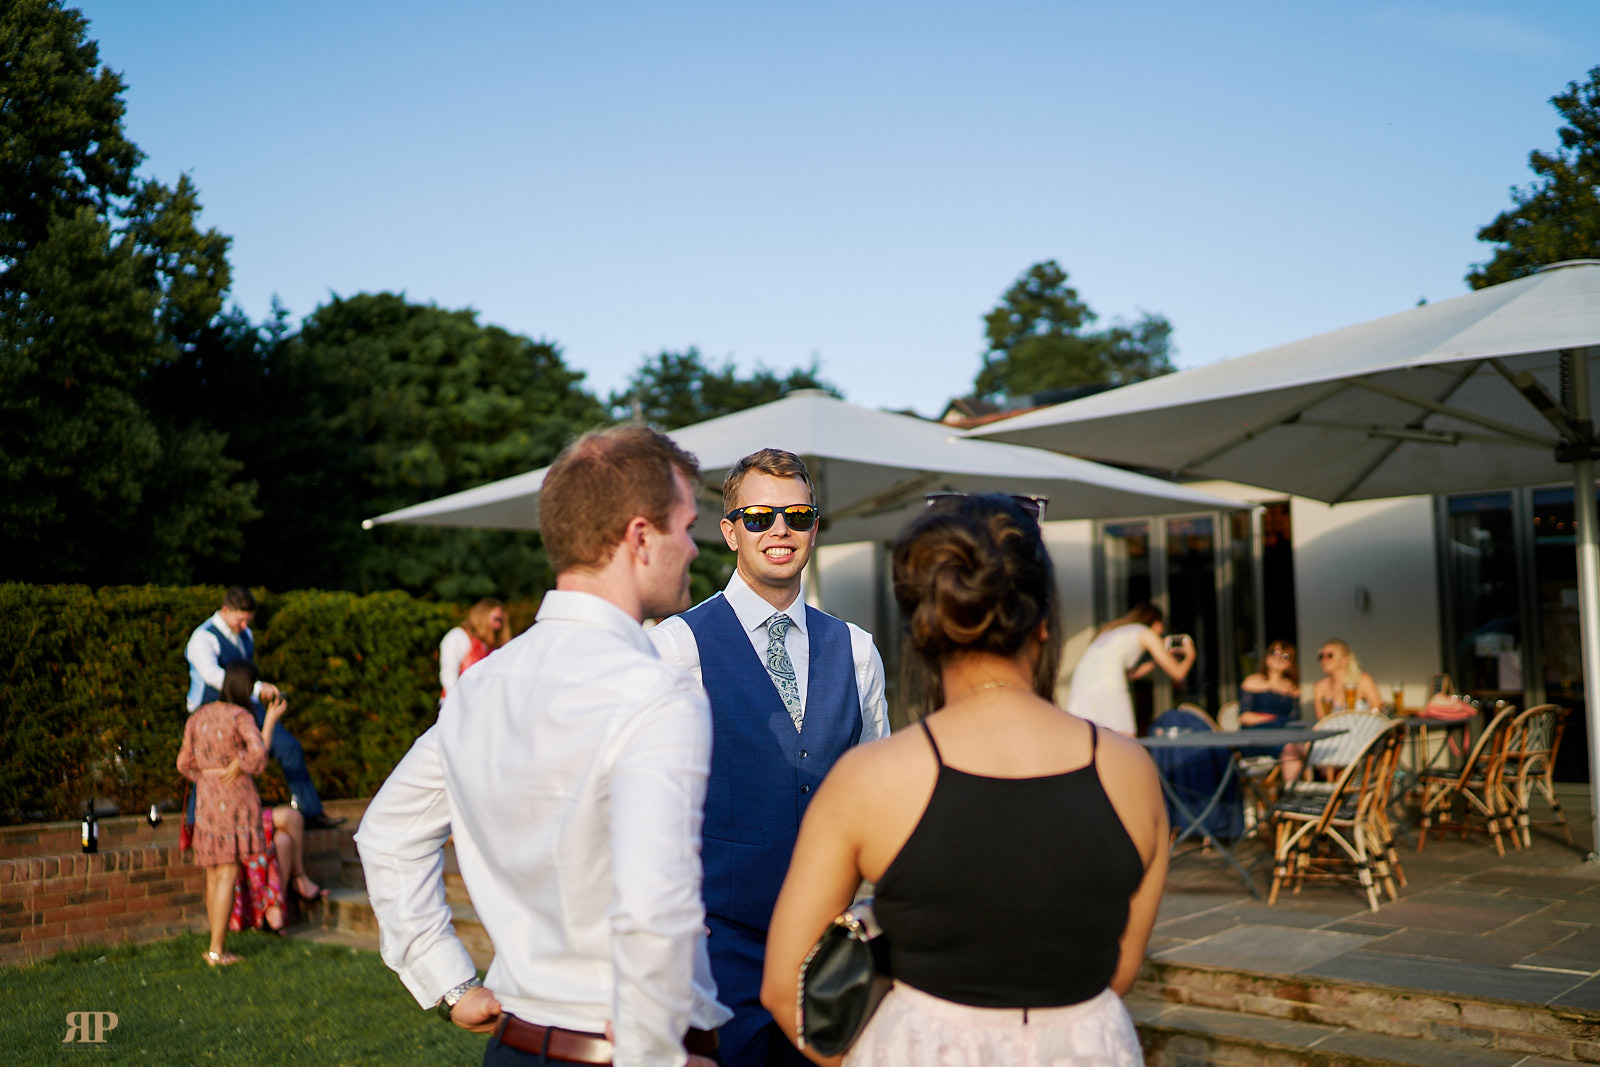 Amy Derek Wedding The Great House at The Great House Reading on 29 June 2019.